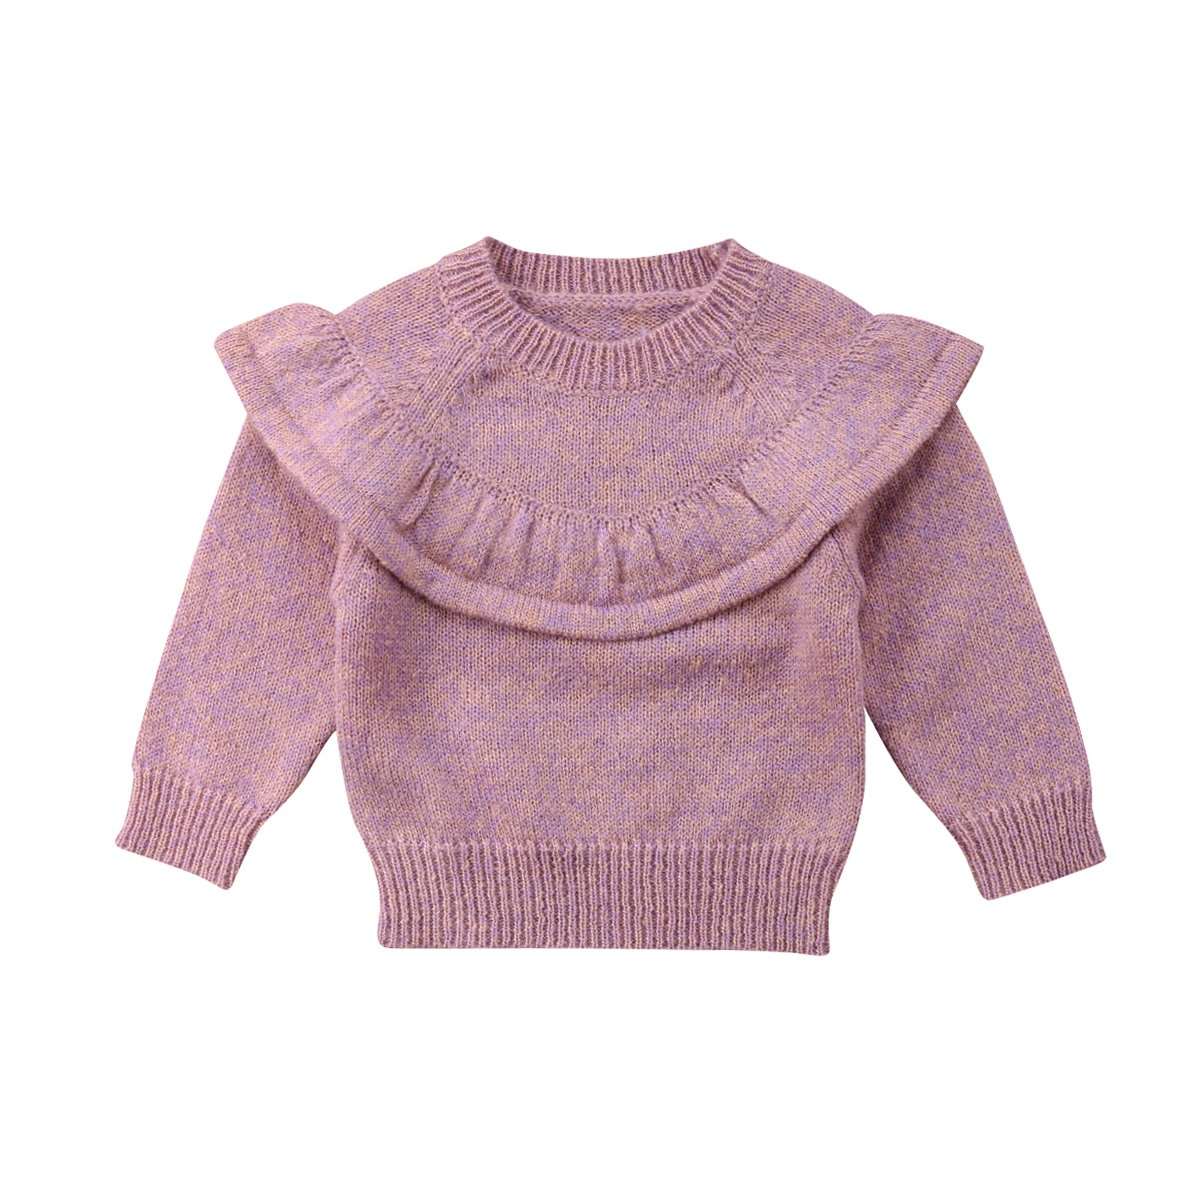 Bulingna Toddler Infant Baby Girl Ruffle Long Sleeve Knitted Sweater Pullover Tops 0-3T